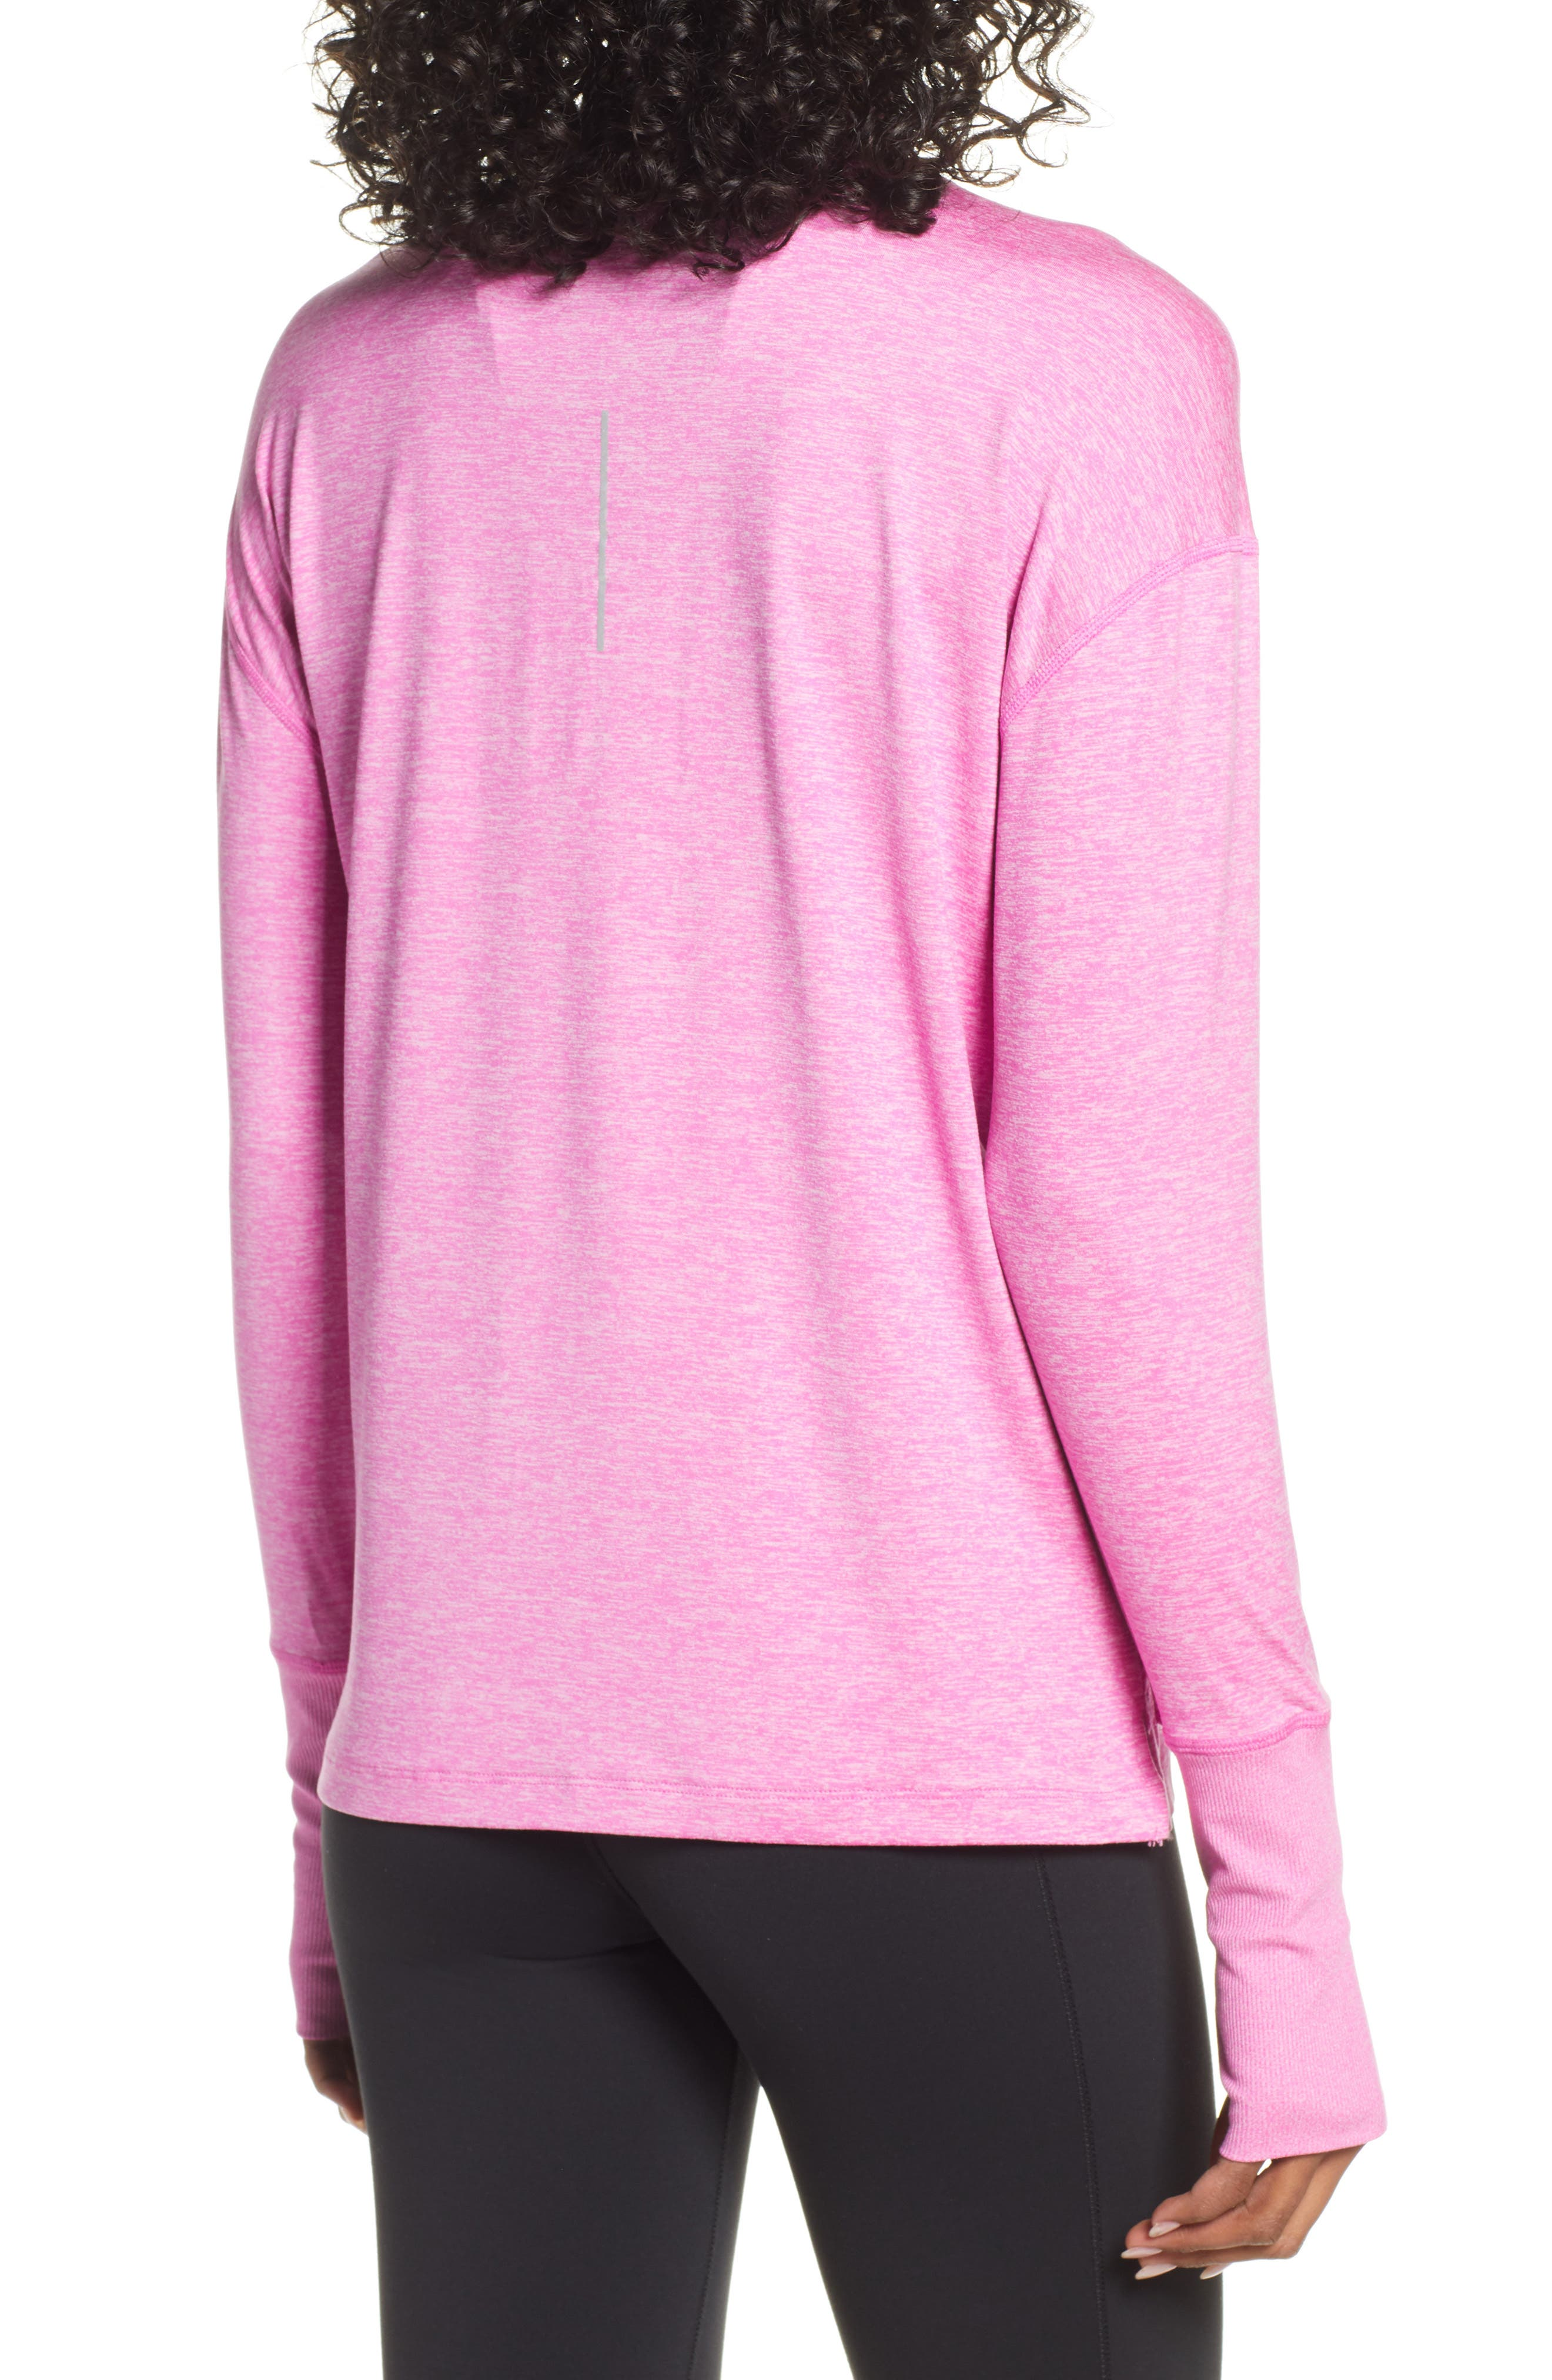 NIKE, Element Long-Sleeve Running Top, Alternate thumbnail 2, color, ACTIVE FUCHSIA/ PINK RISE